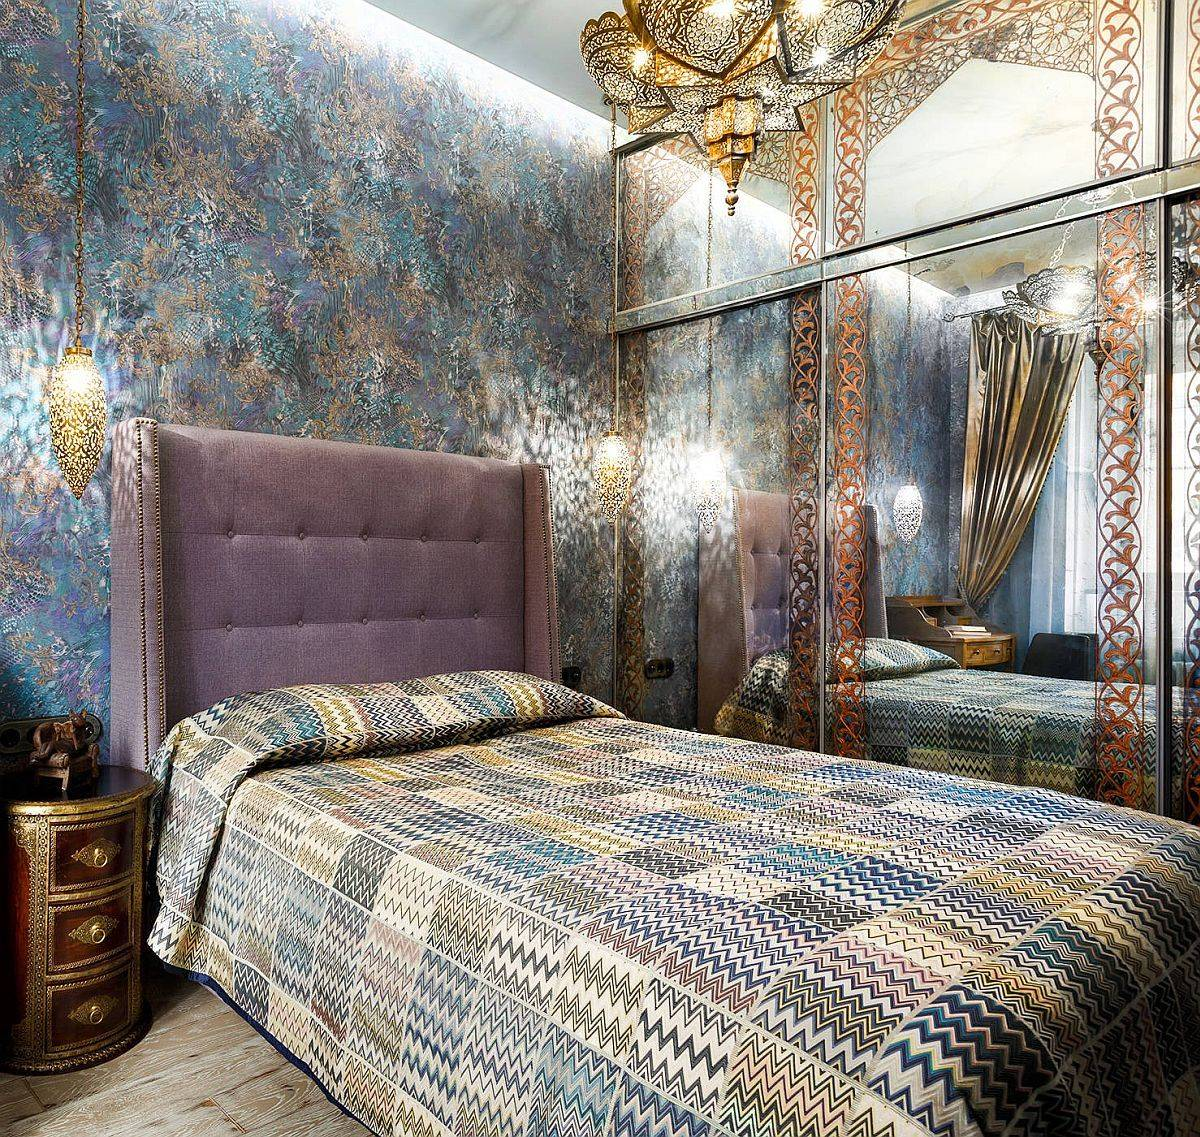 Mirrored-wardrobe-and-dazzling-wallpaper-along-with-lighting-create-a-magical-small-Mediterranean-bedroom-48681